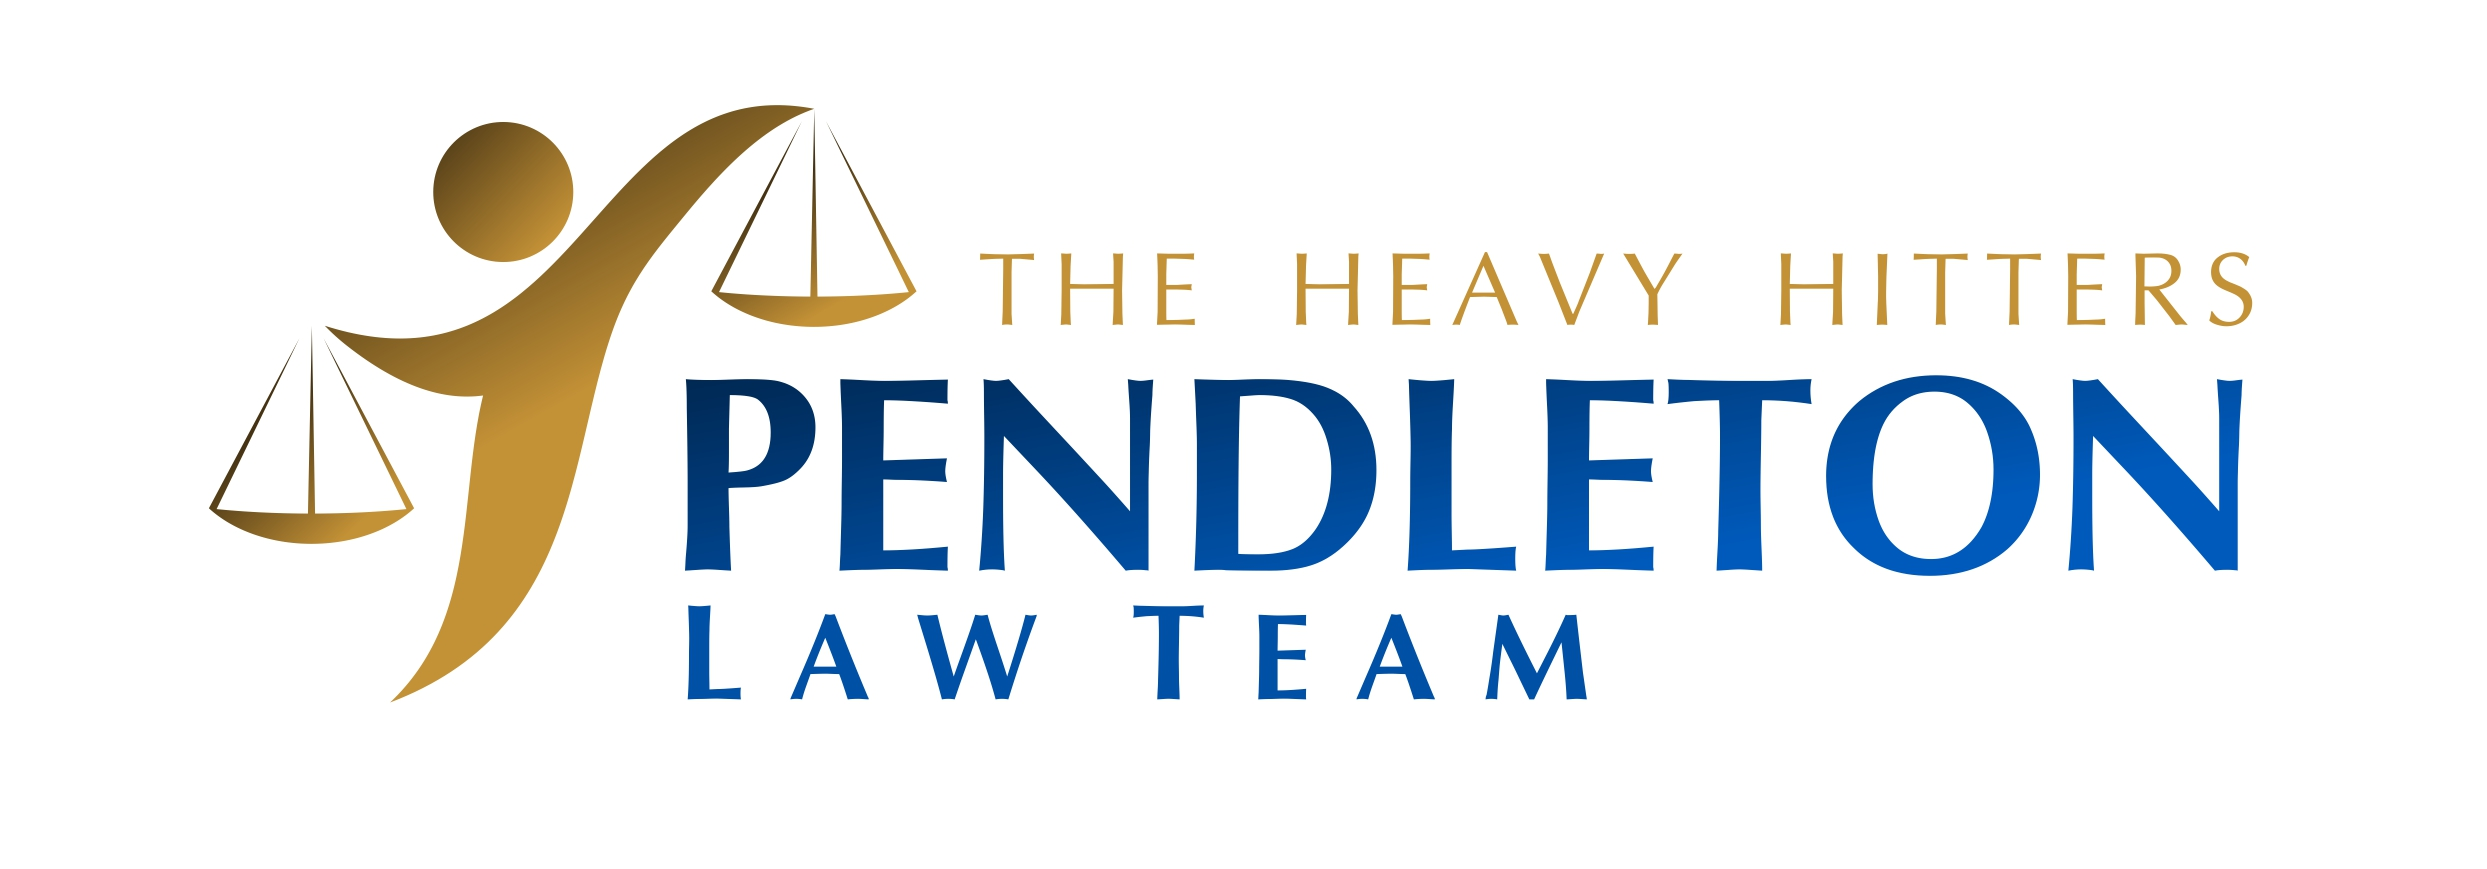 Pendleton Law Team